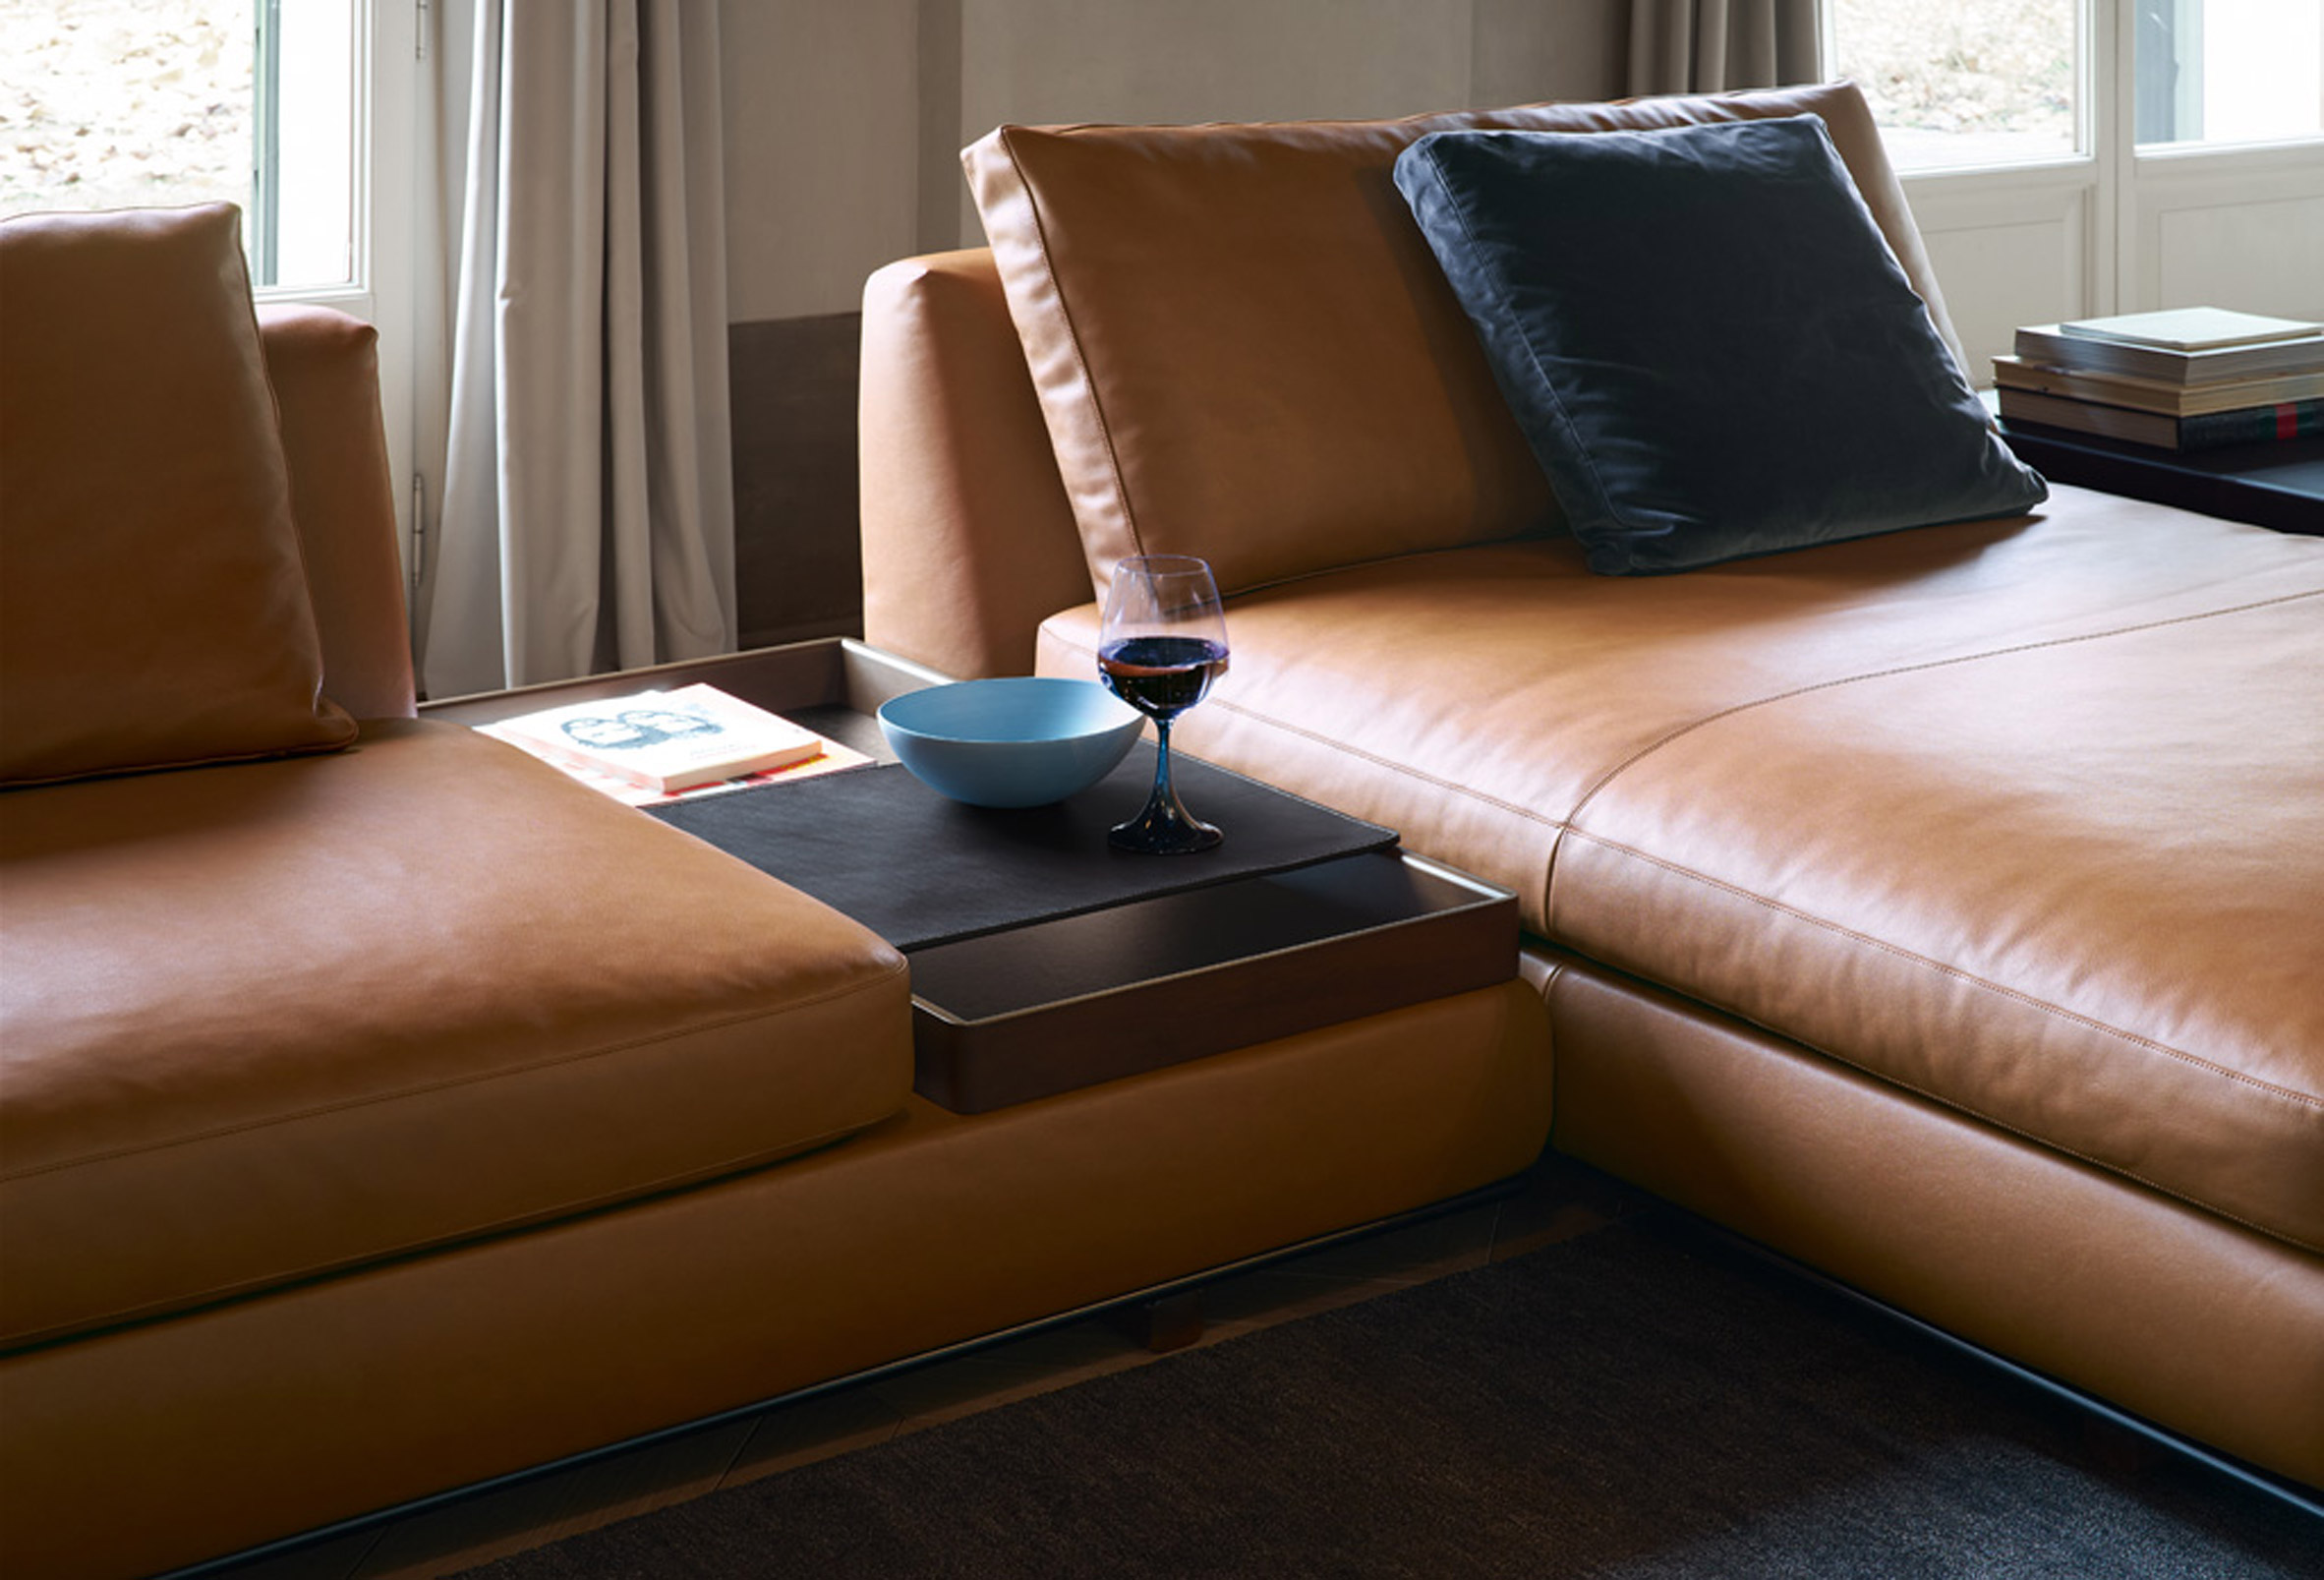 Walter knoll to present sofa with integrated accessories at milan tama living is the setting for the special moment of coming home said walter knoll a clear picture of symmetry lines and surface giving the sofa the parisarafo Gallery